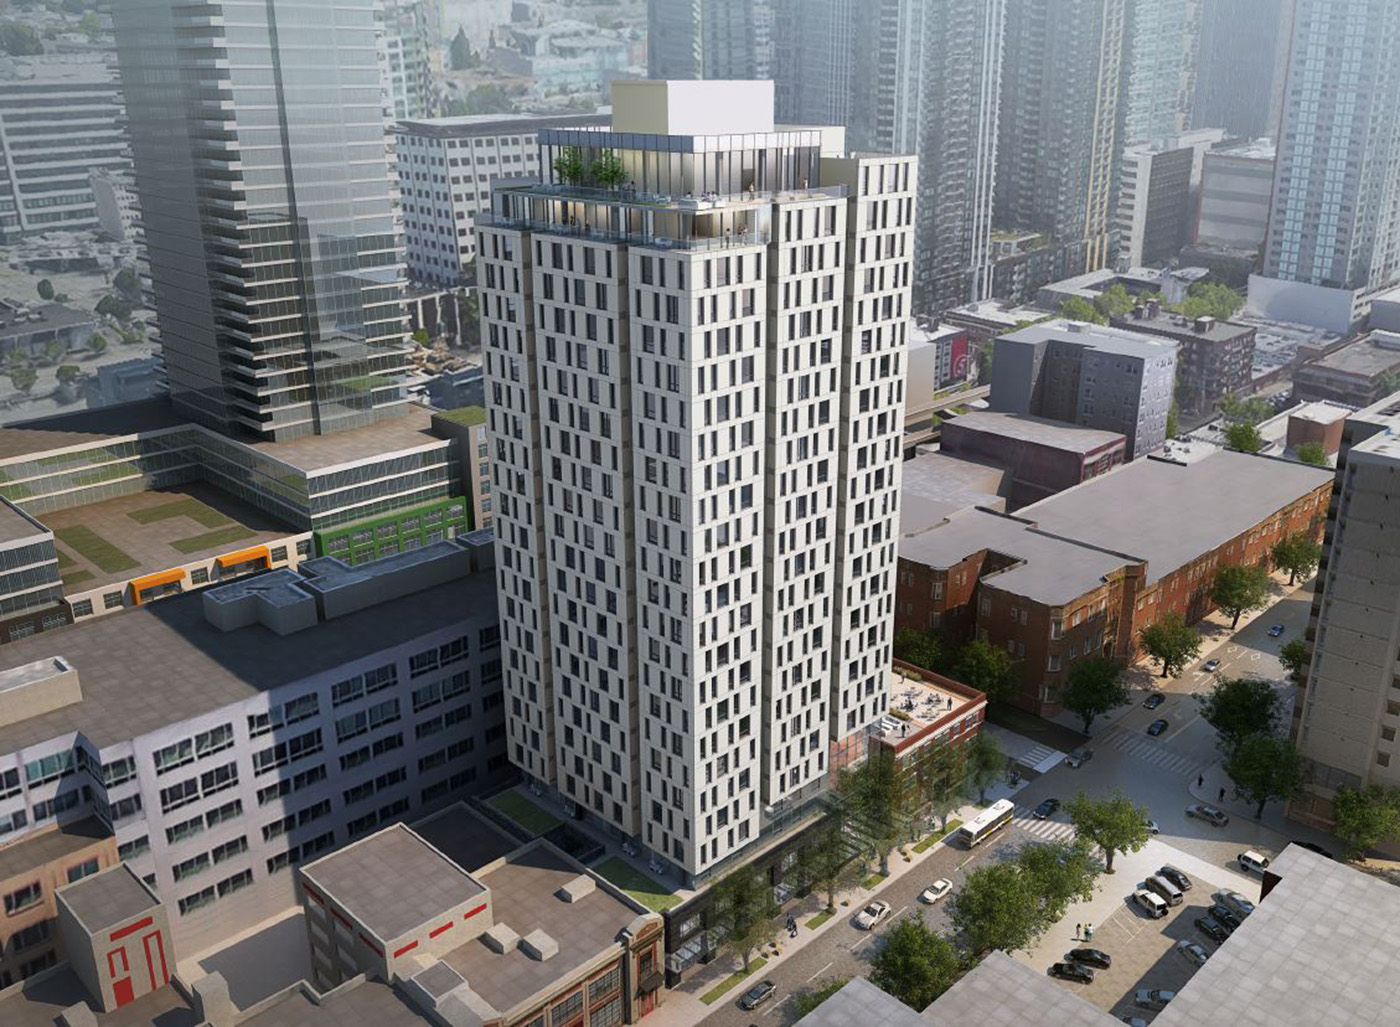 Plans for Fourth & Bell call for the construction of a 24-story, 287-unit tower next to the landmarked Franklin Apartments.